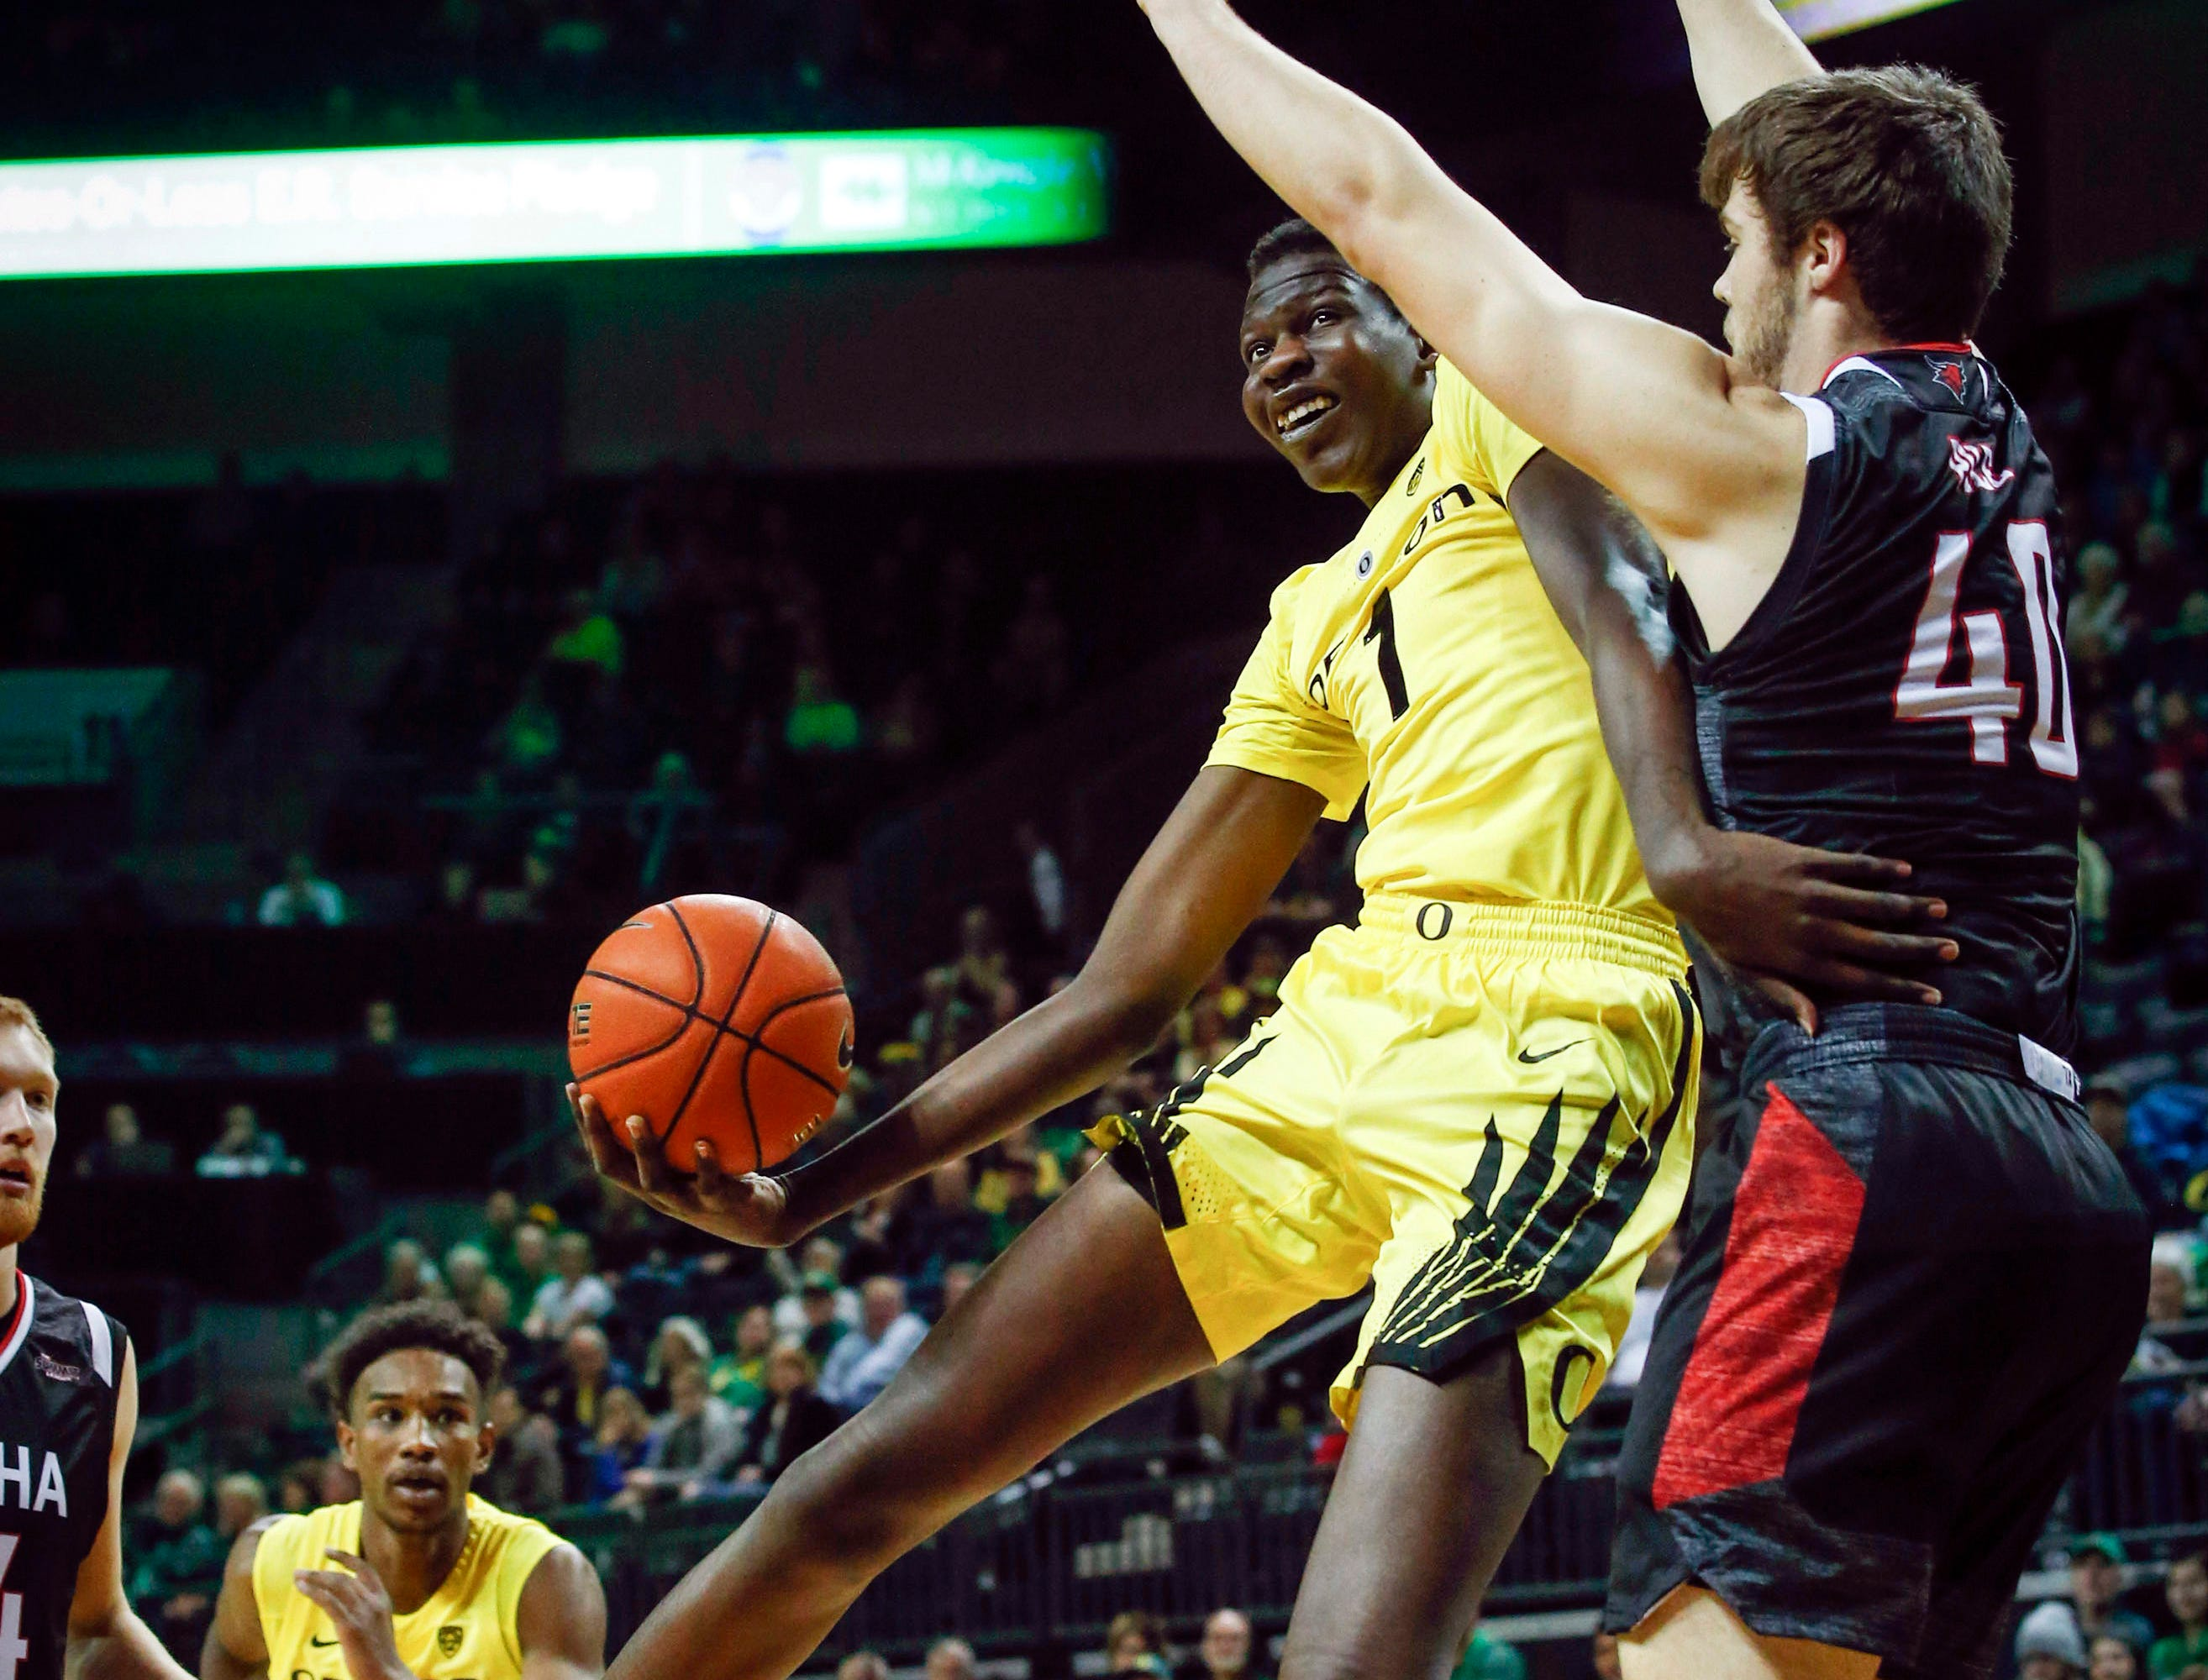 Oregon center Bol Bol (1) drives to the basket against Nebraska-Omaha forward Matt Pile (40) during the first half of their NCAA college basketball game, Saturday, Dec. 8, 2018, in Eugene, Ore.